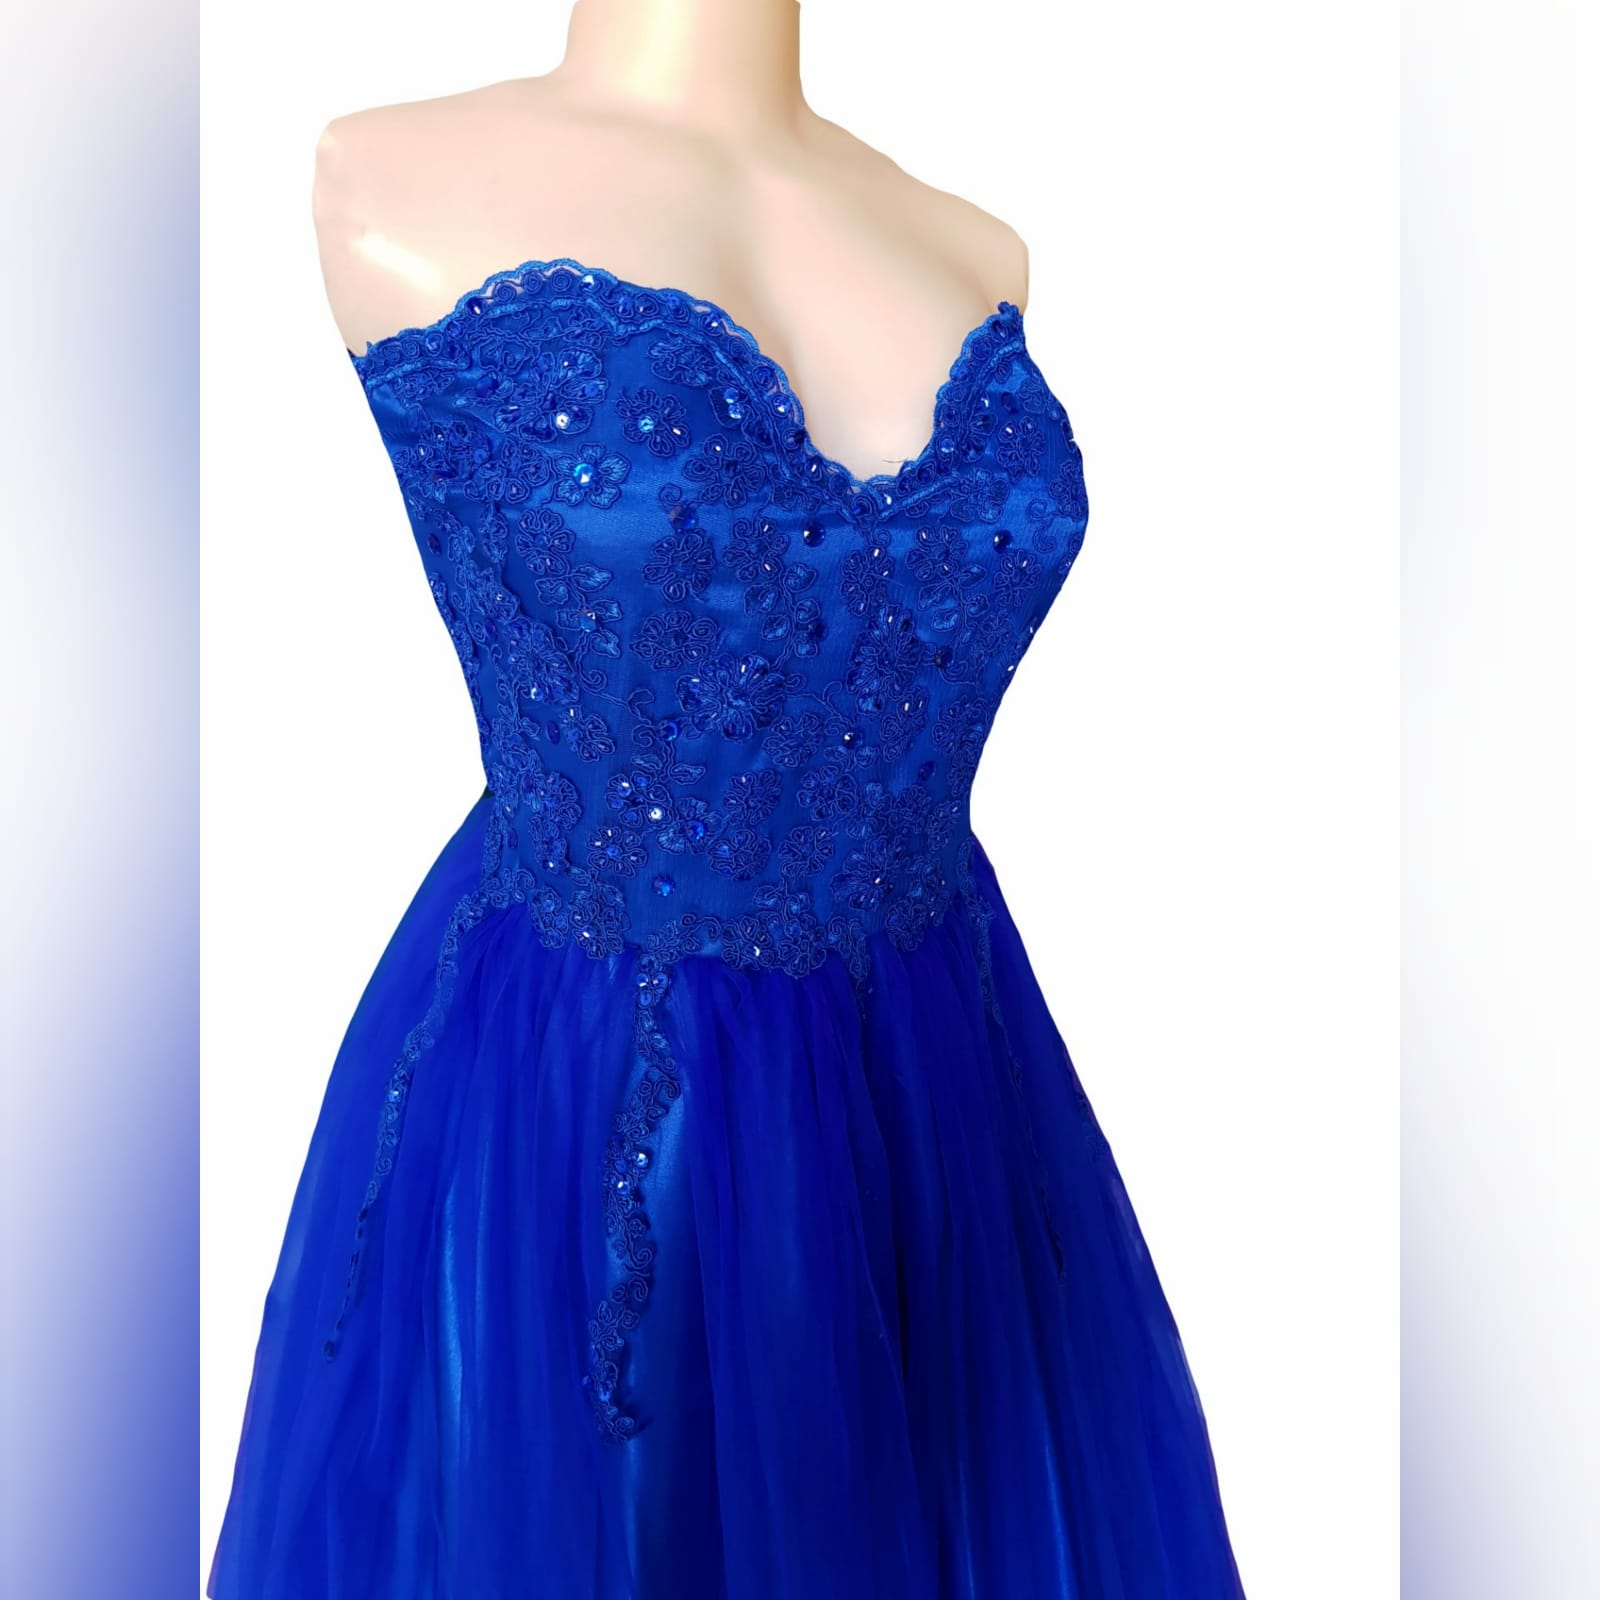 Royal blue boobtube tulle prom dress 9 royal blue boobtube tulle prom dress. Bodice with a sweetheart neckline and detailed with beaded lace falling onto the tulle skirt.